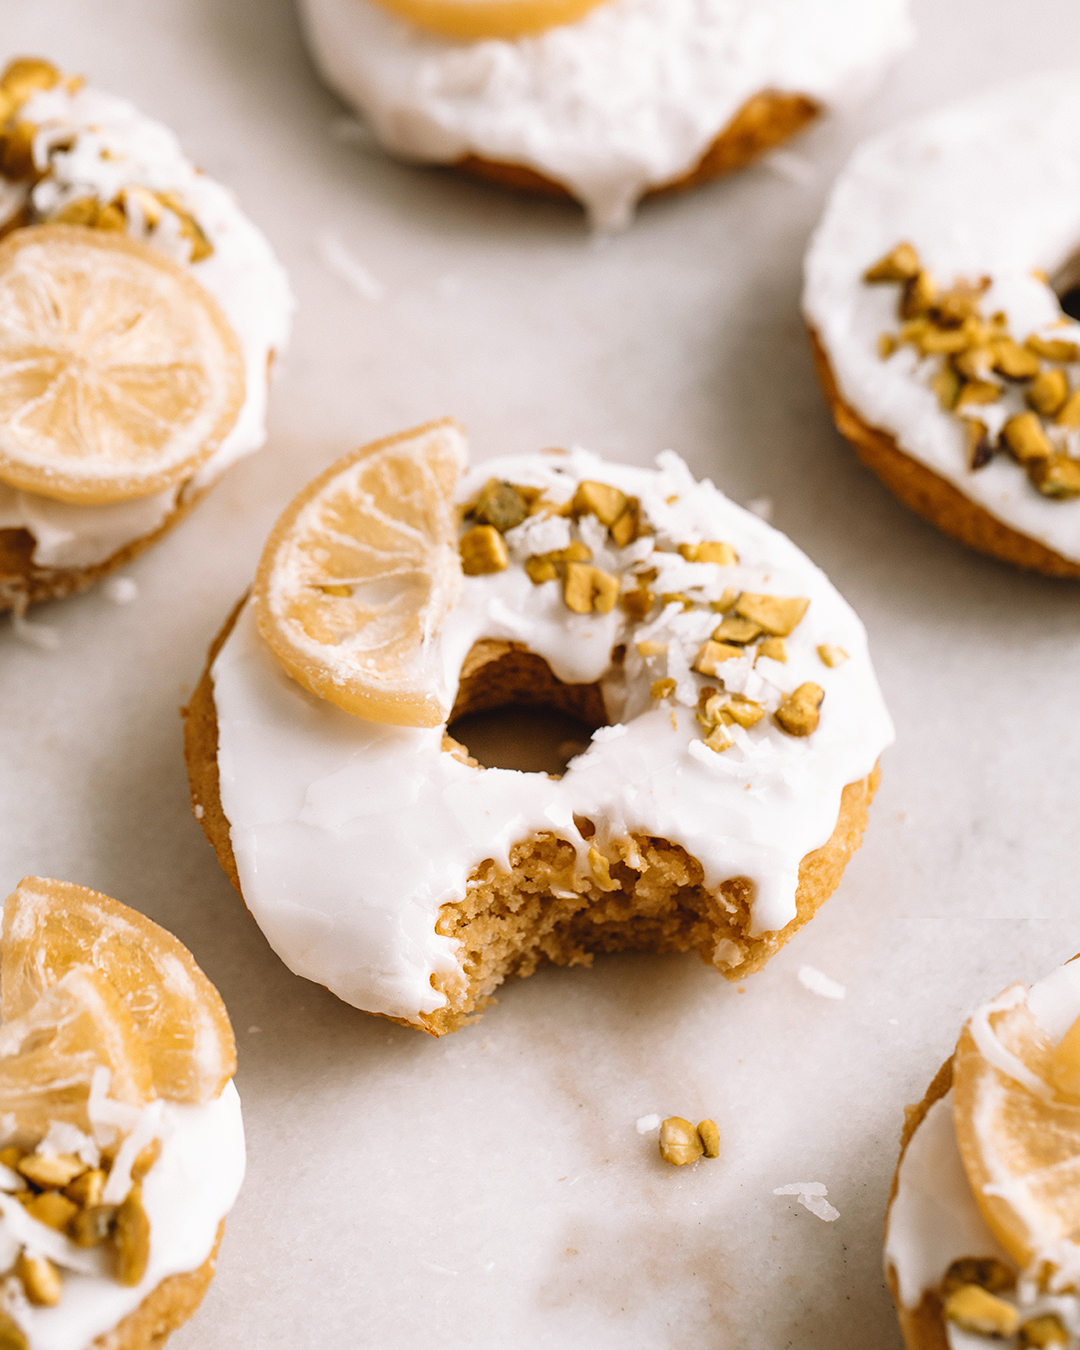 LEMON PISTACHIO DONUTS - INGREDIENTSDONUTS:1 cup gluten free flour (I use Bob's red mill gluten free 1:1 baking flour)1/2 cup coconut sugar1/2 cup apple sauce1/4 cup olive oiljuice of one lemon1 tsp baking poweder1/8 cup non-dairy milk (or coconut milk)1/8 cup bone broth (optional: if omitting, substitute with 1/8 cup non-dairy milk)1 tb lemon zest1/2 cup shredded coconut (I like sweetened for this recipe)pinch sea saltLEMON GLAZE:1 1/2 cups powdered sugar2-3 tb lemon juice1/2 cup chopped pistachiosshredded sweetened coconut